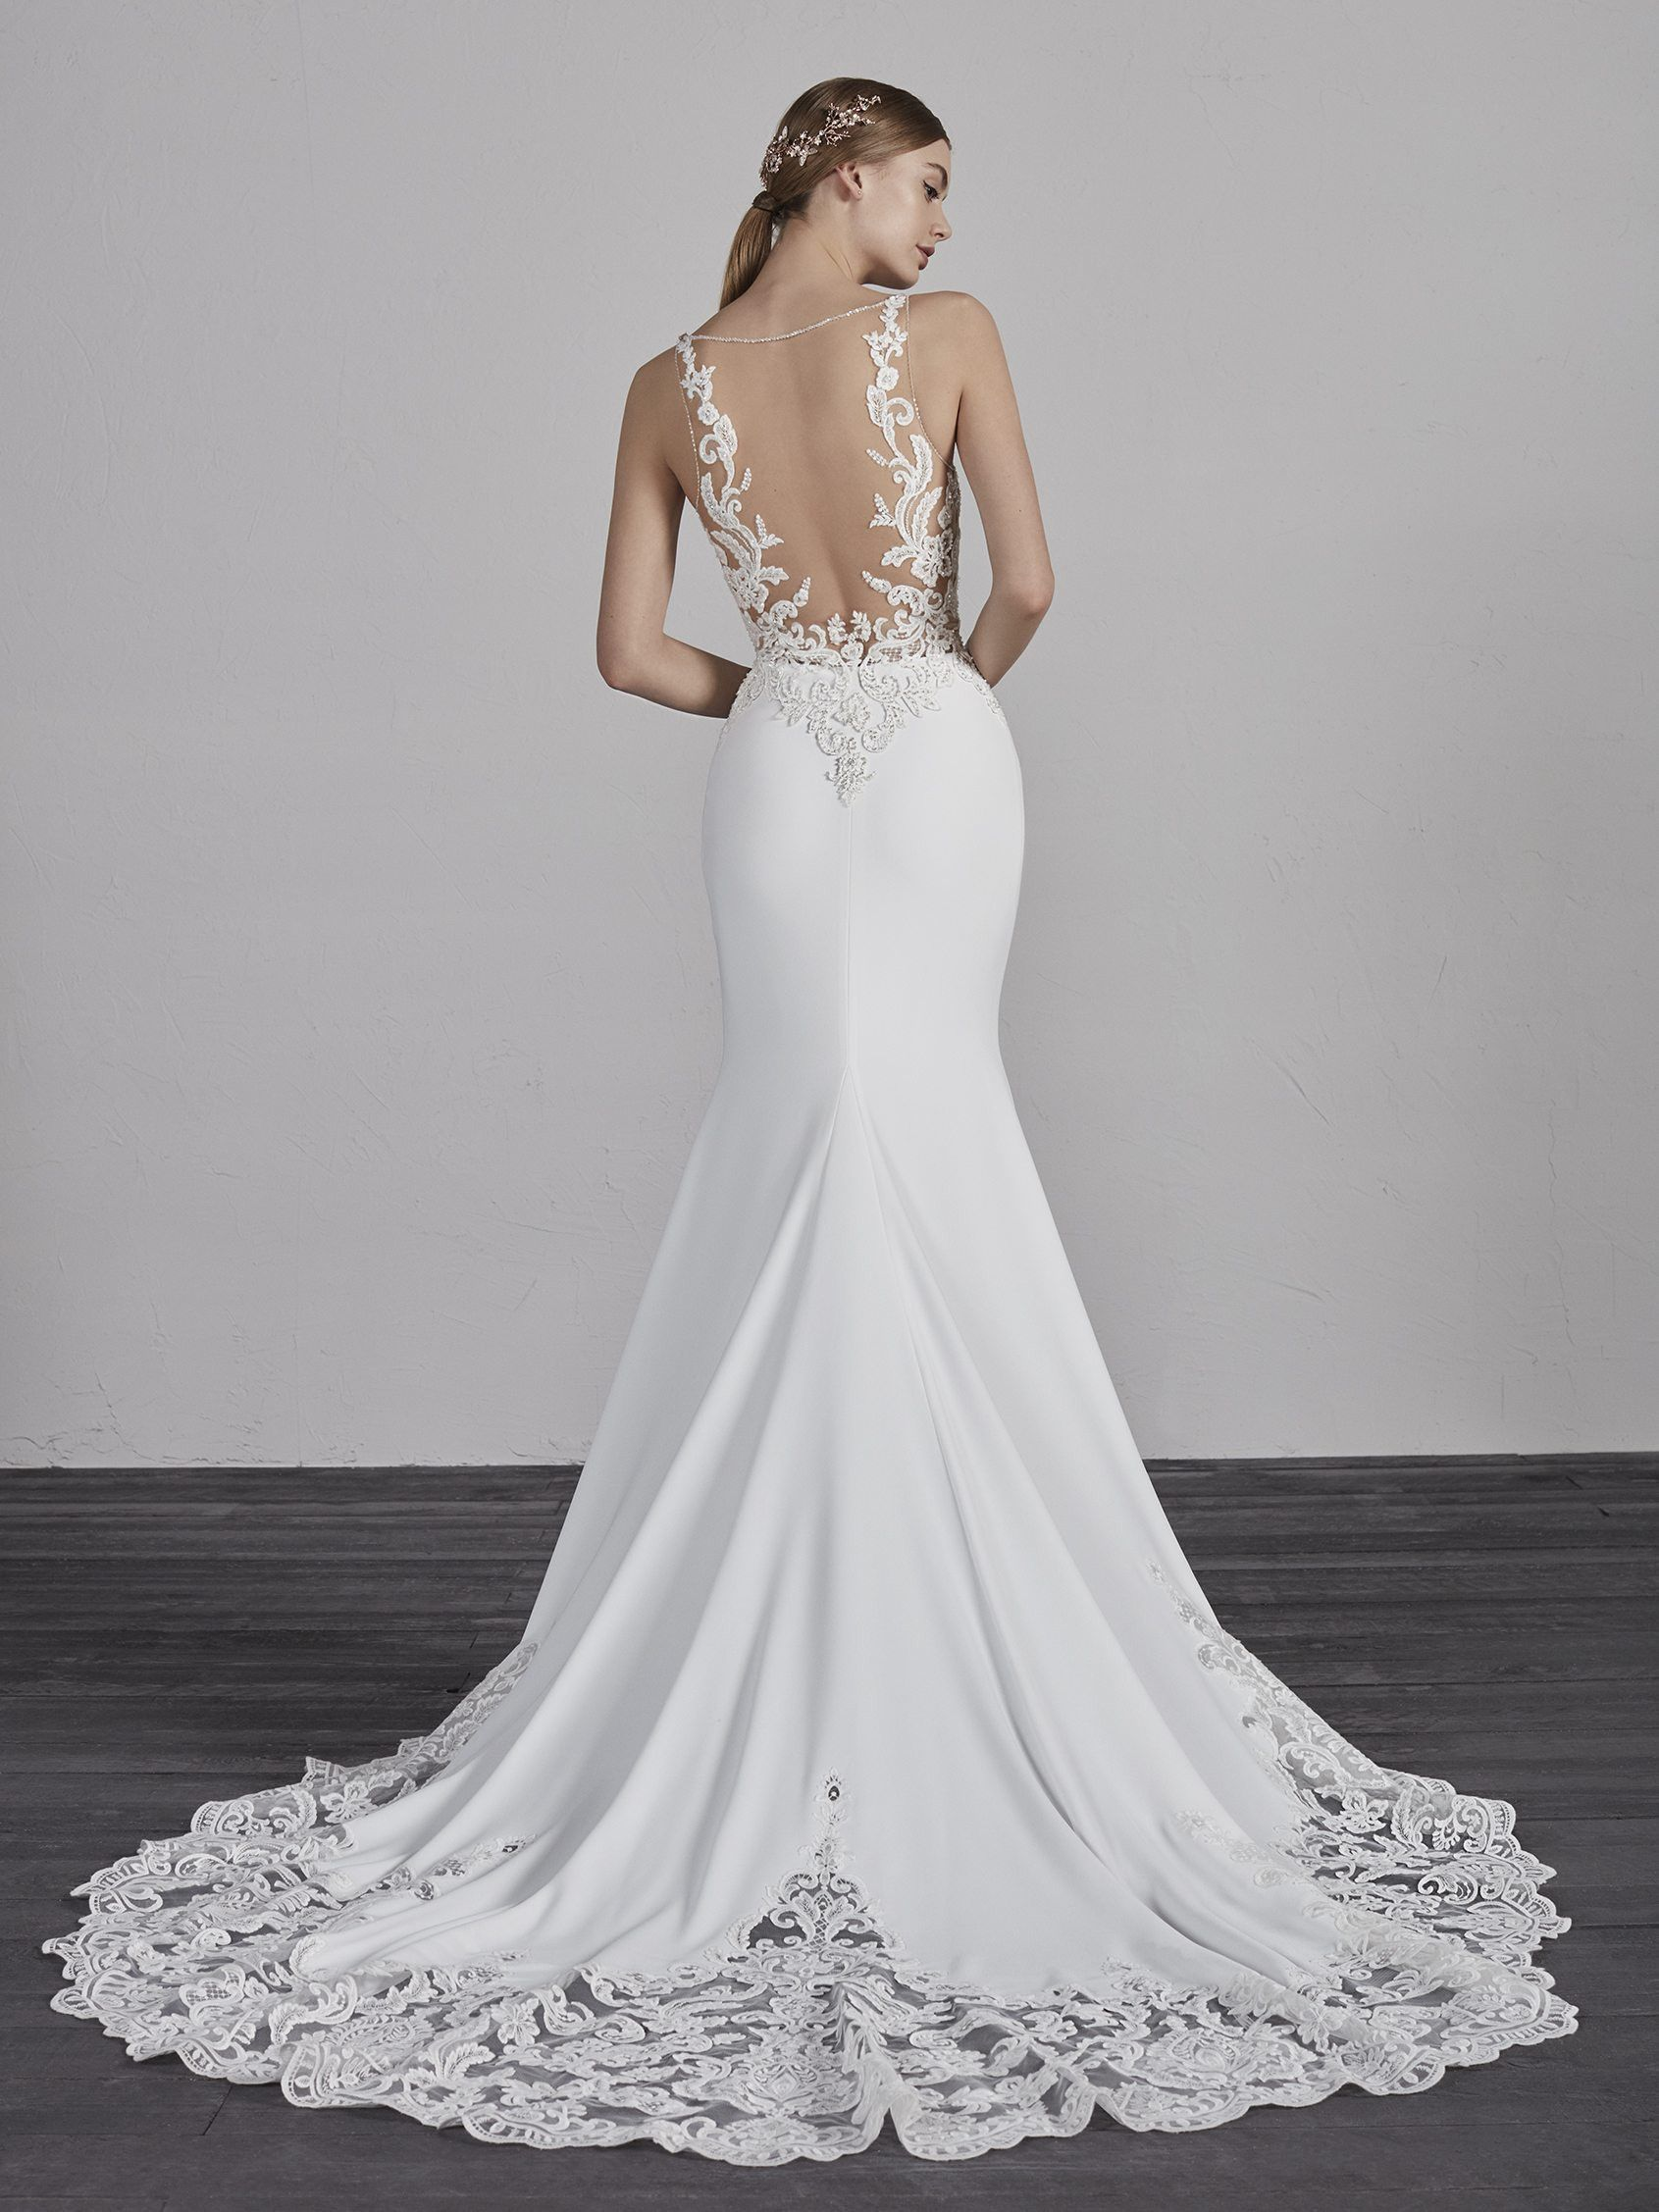 863c1a2b55216 Erandi | Pronovias | Available at Lulu's Bridal Boutique | Lulu's Bridal |  Dallas, Texas | Mermaid | V Neck | Embroidered | Lace | Crepe | Illusion  Back ...